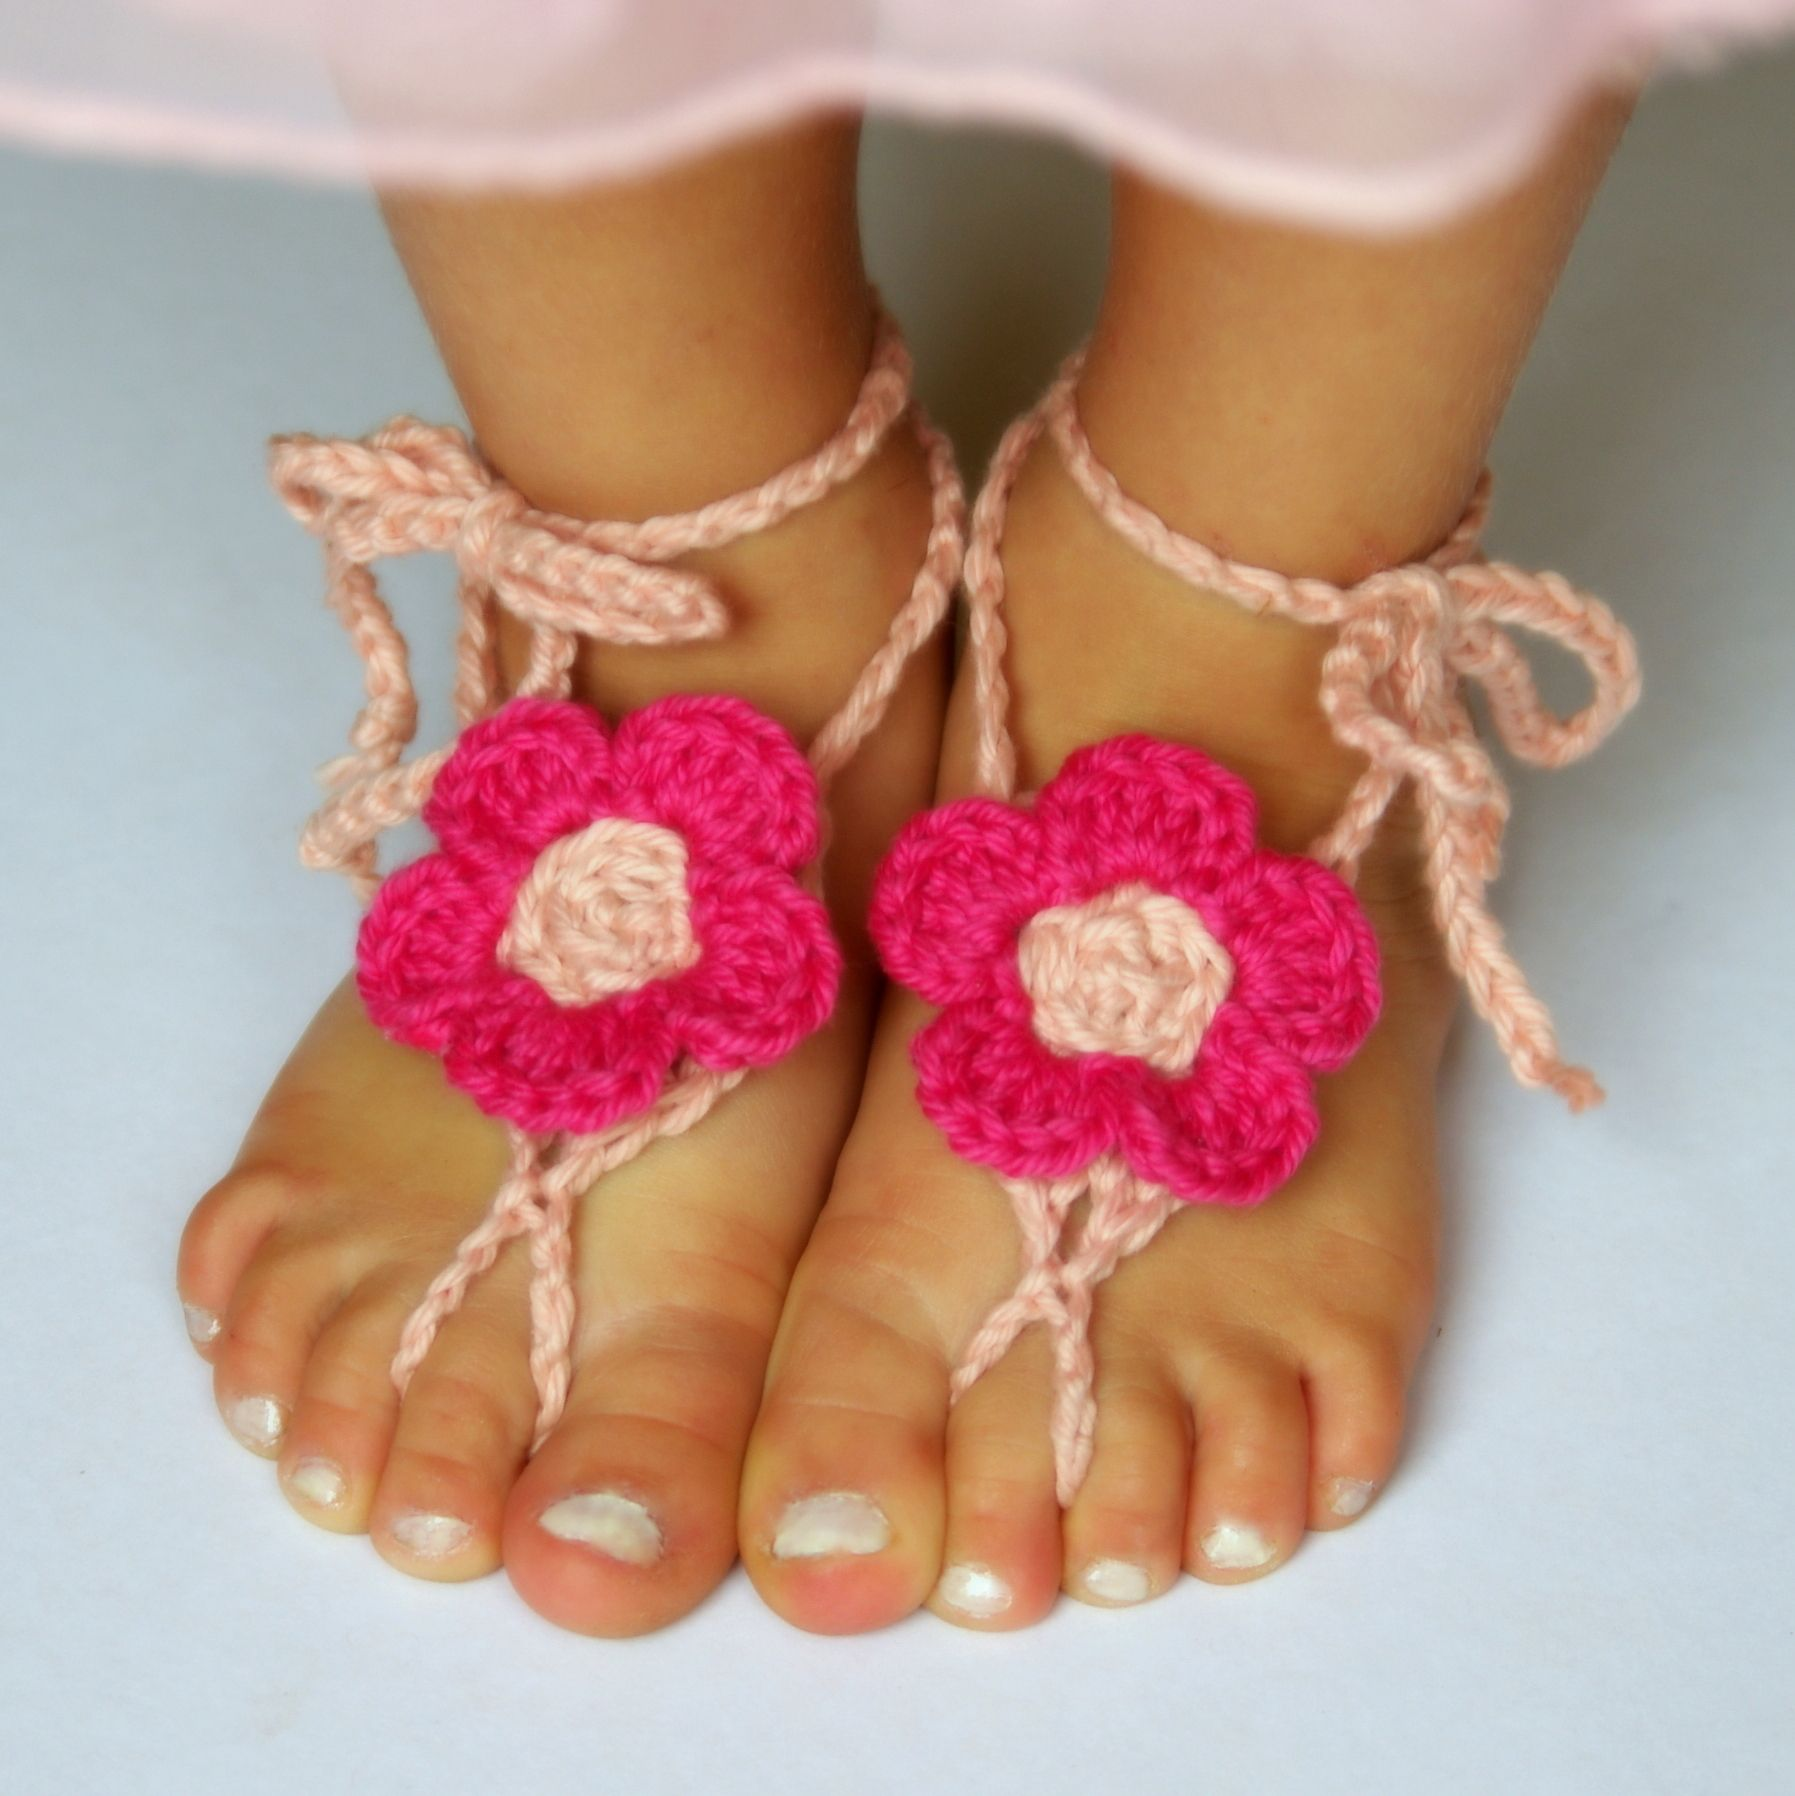 Barefoot Sandals Free Pattern From Two Girls Patterns Crochet Baby Sandals Pattern Toddler Crochet Patterns Crochet Baby Sandals